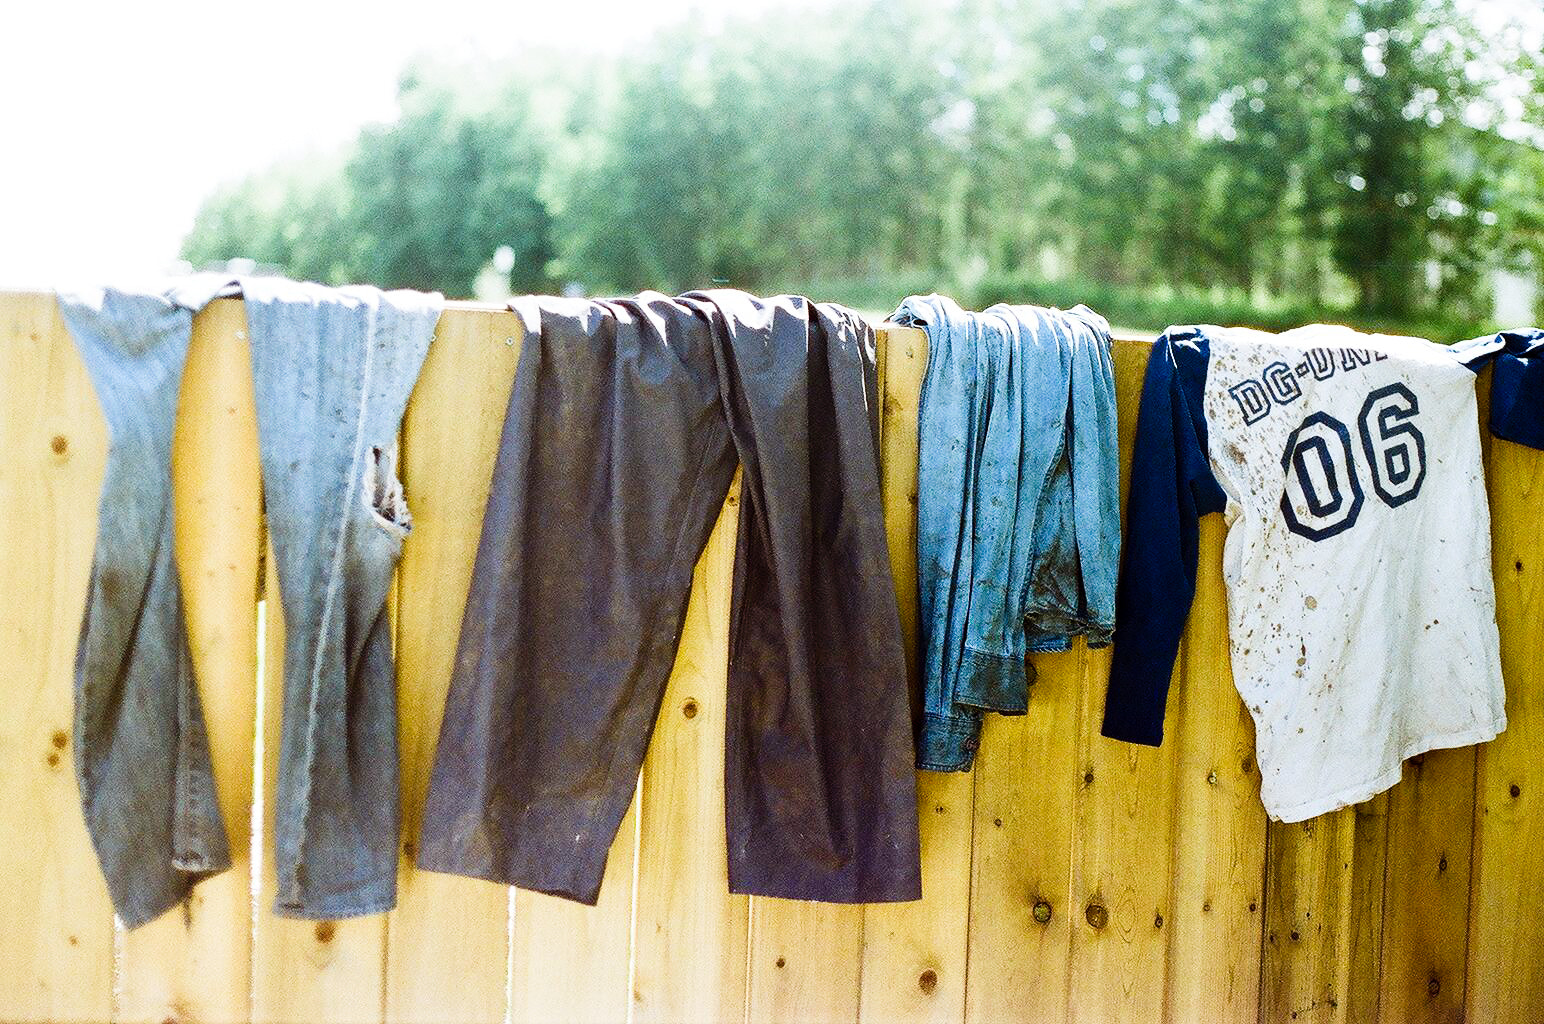 Photograph Drying In the Sun by Davin Gegolick on 500px